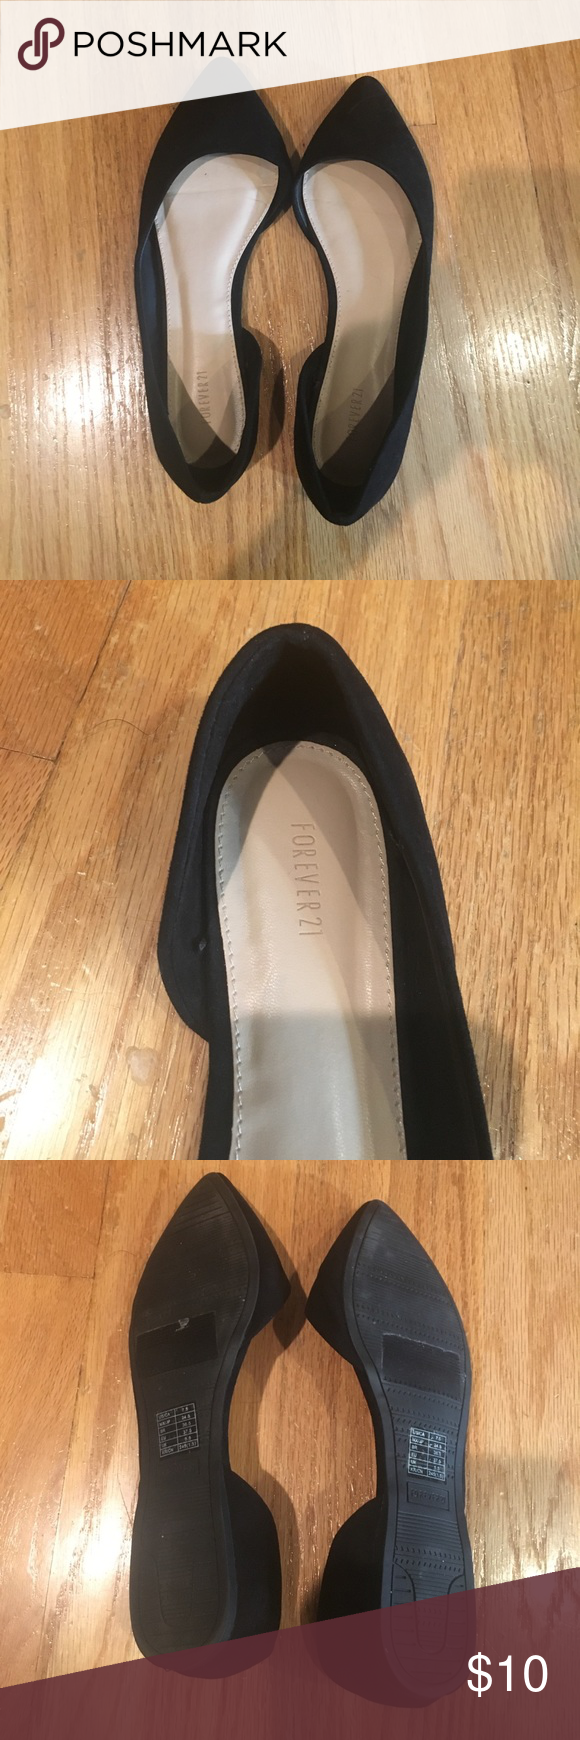 Black Pointed Toe Flats Forever 21. Black. Pointed toe. Slip on. Lightly worn. Good condition. Forever 21 Shoes Flats & Loafers